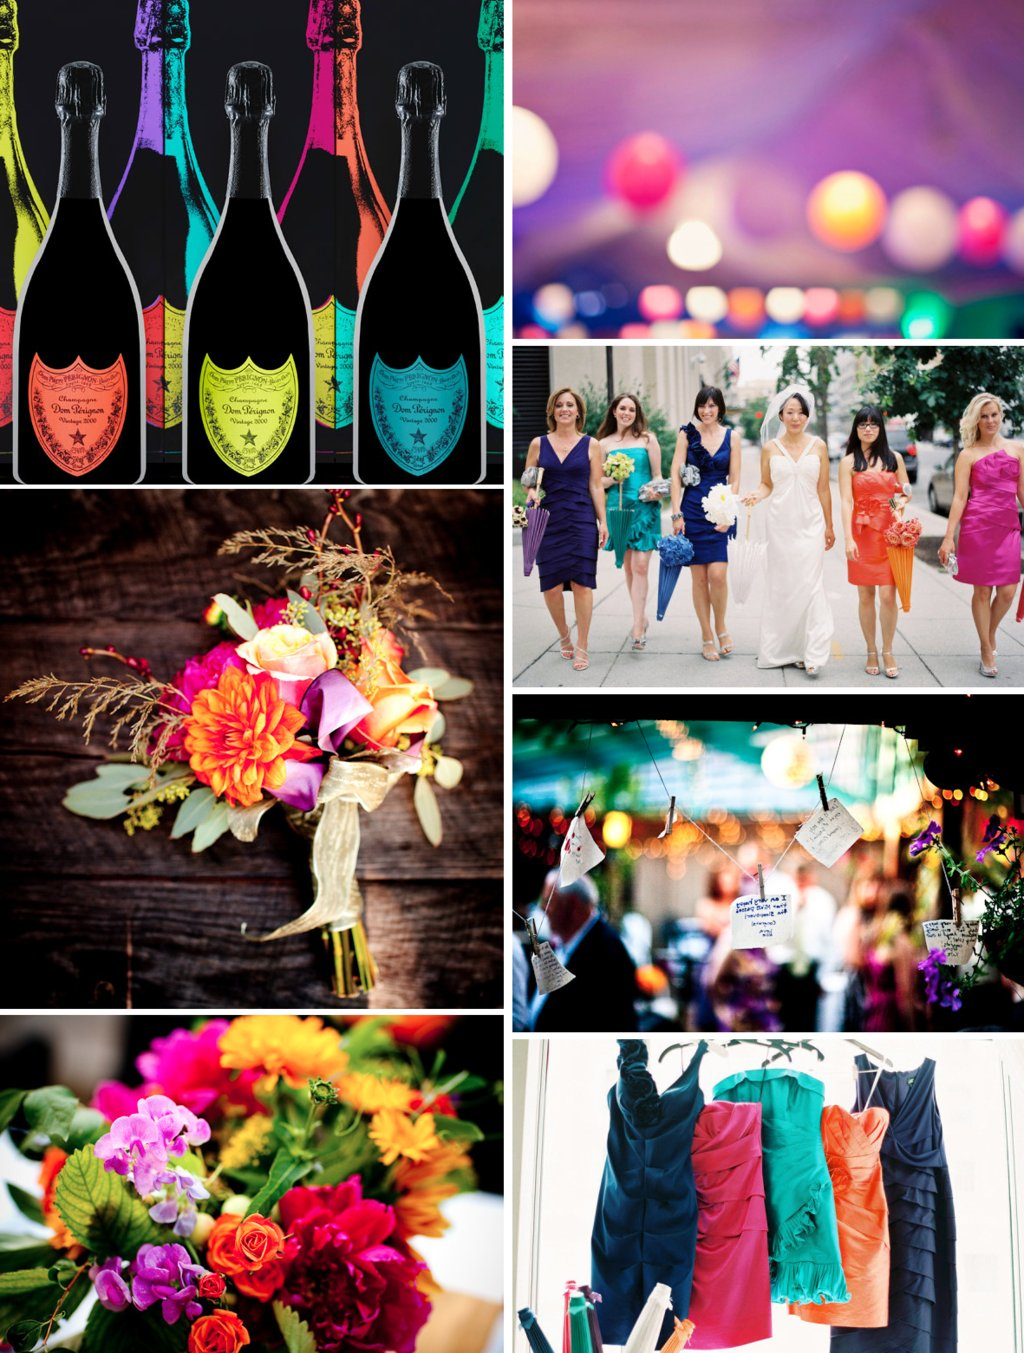 Technicolor-wedding-inspiration-bold-weddings-reception-decor.full